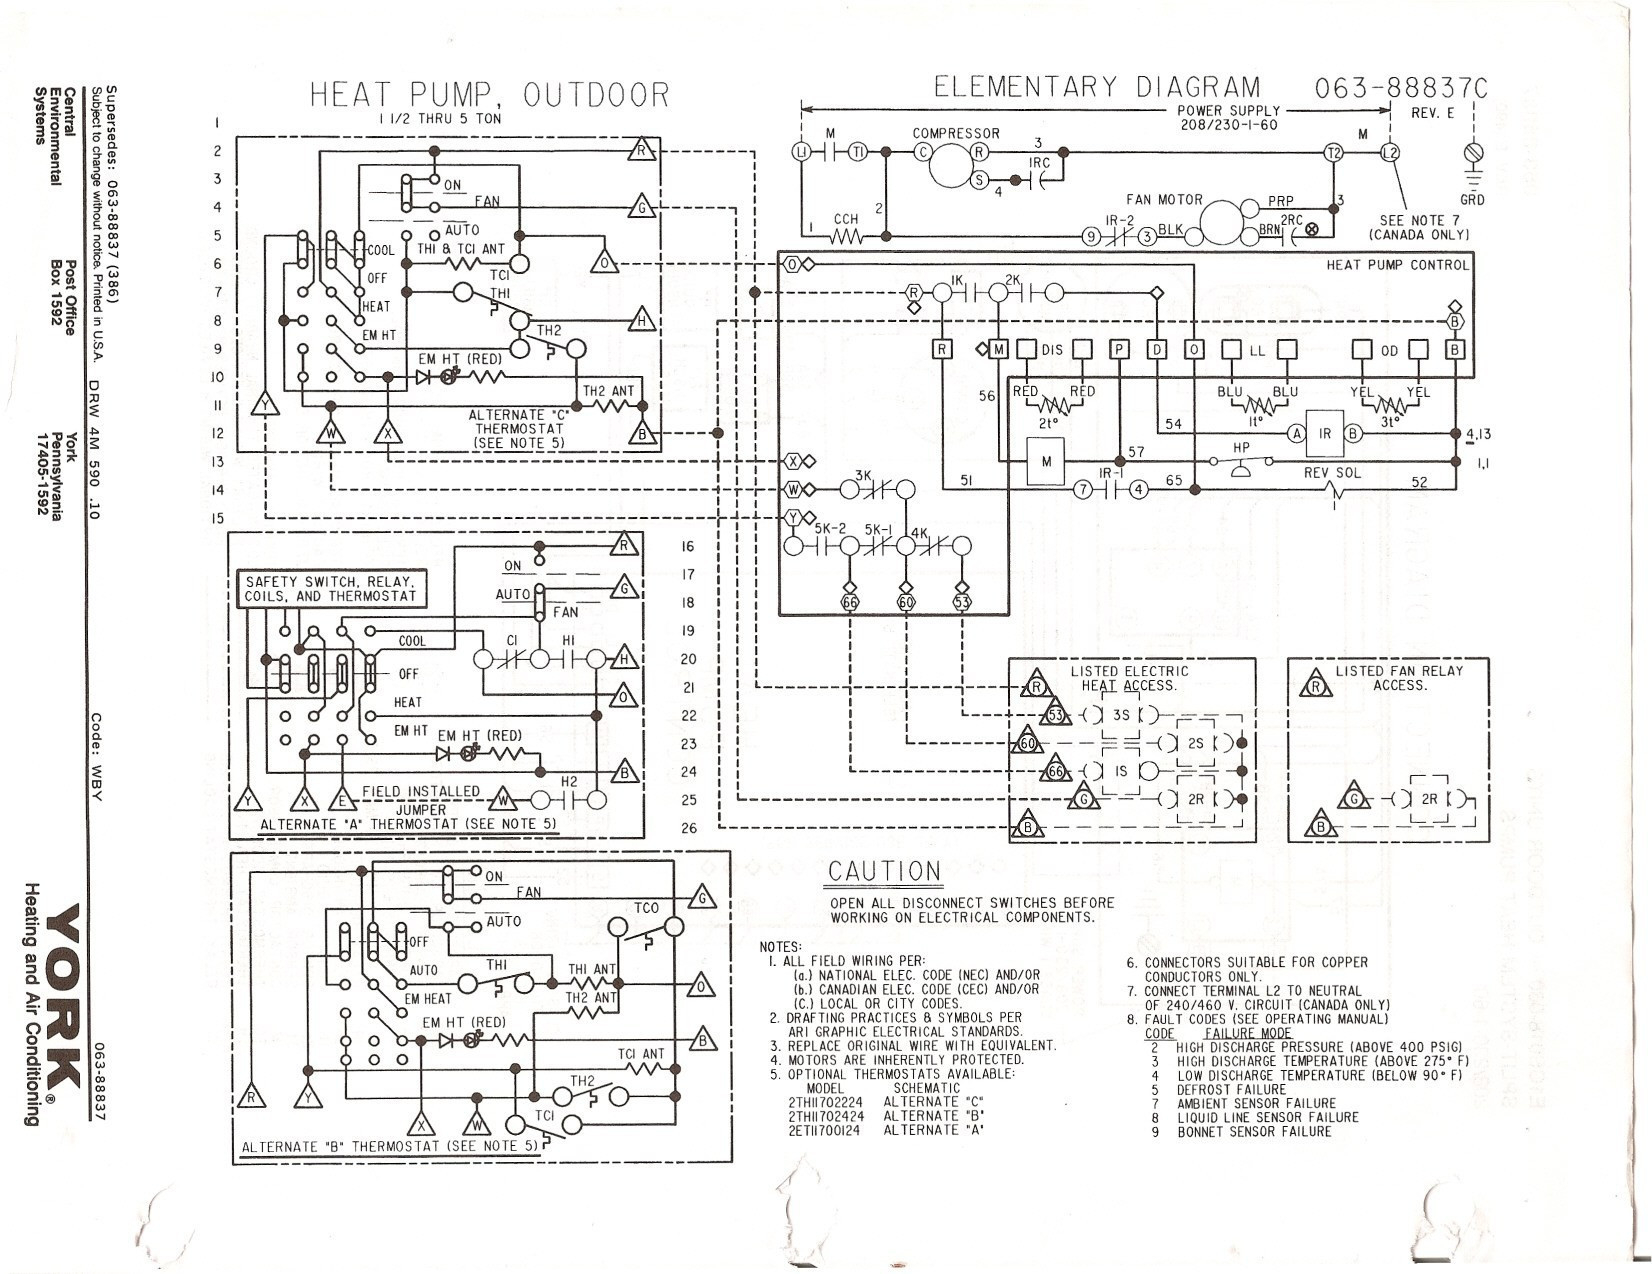 york condenser wiring diagram Collection-Wiring Diagram for York Air Conditioner Best Mcquay Air Conditioner Wiring Diagram Valid Mcquay Wiring Diagram 11-k